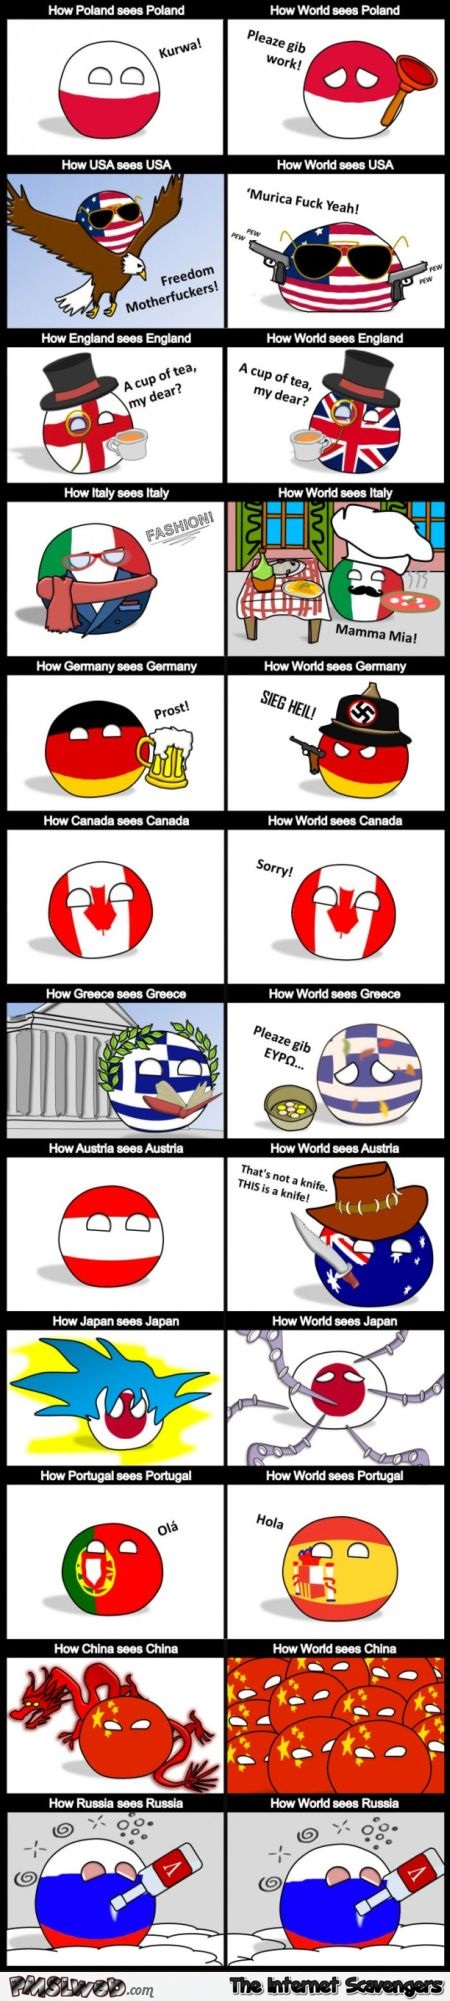 How countries see themselves funny Polandball @PMSLweb.com